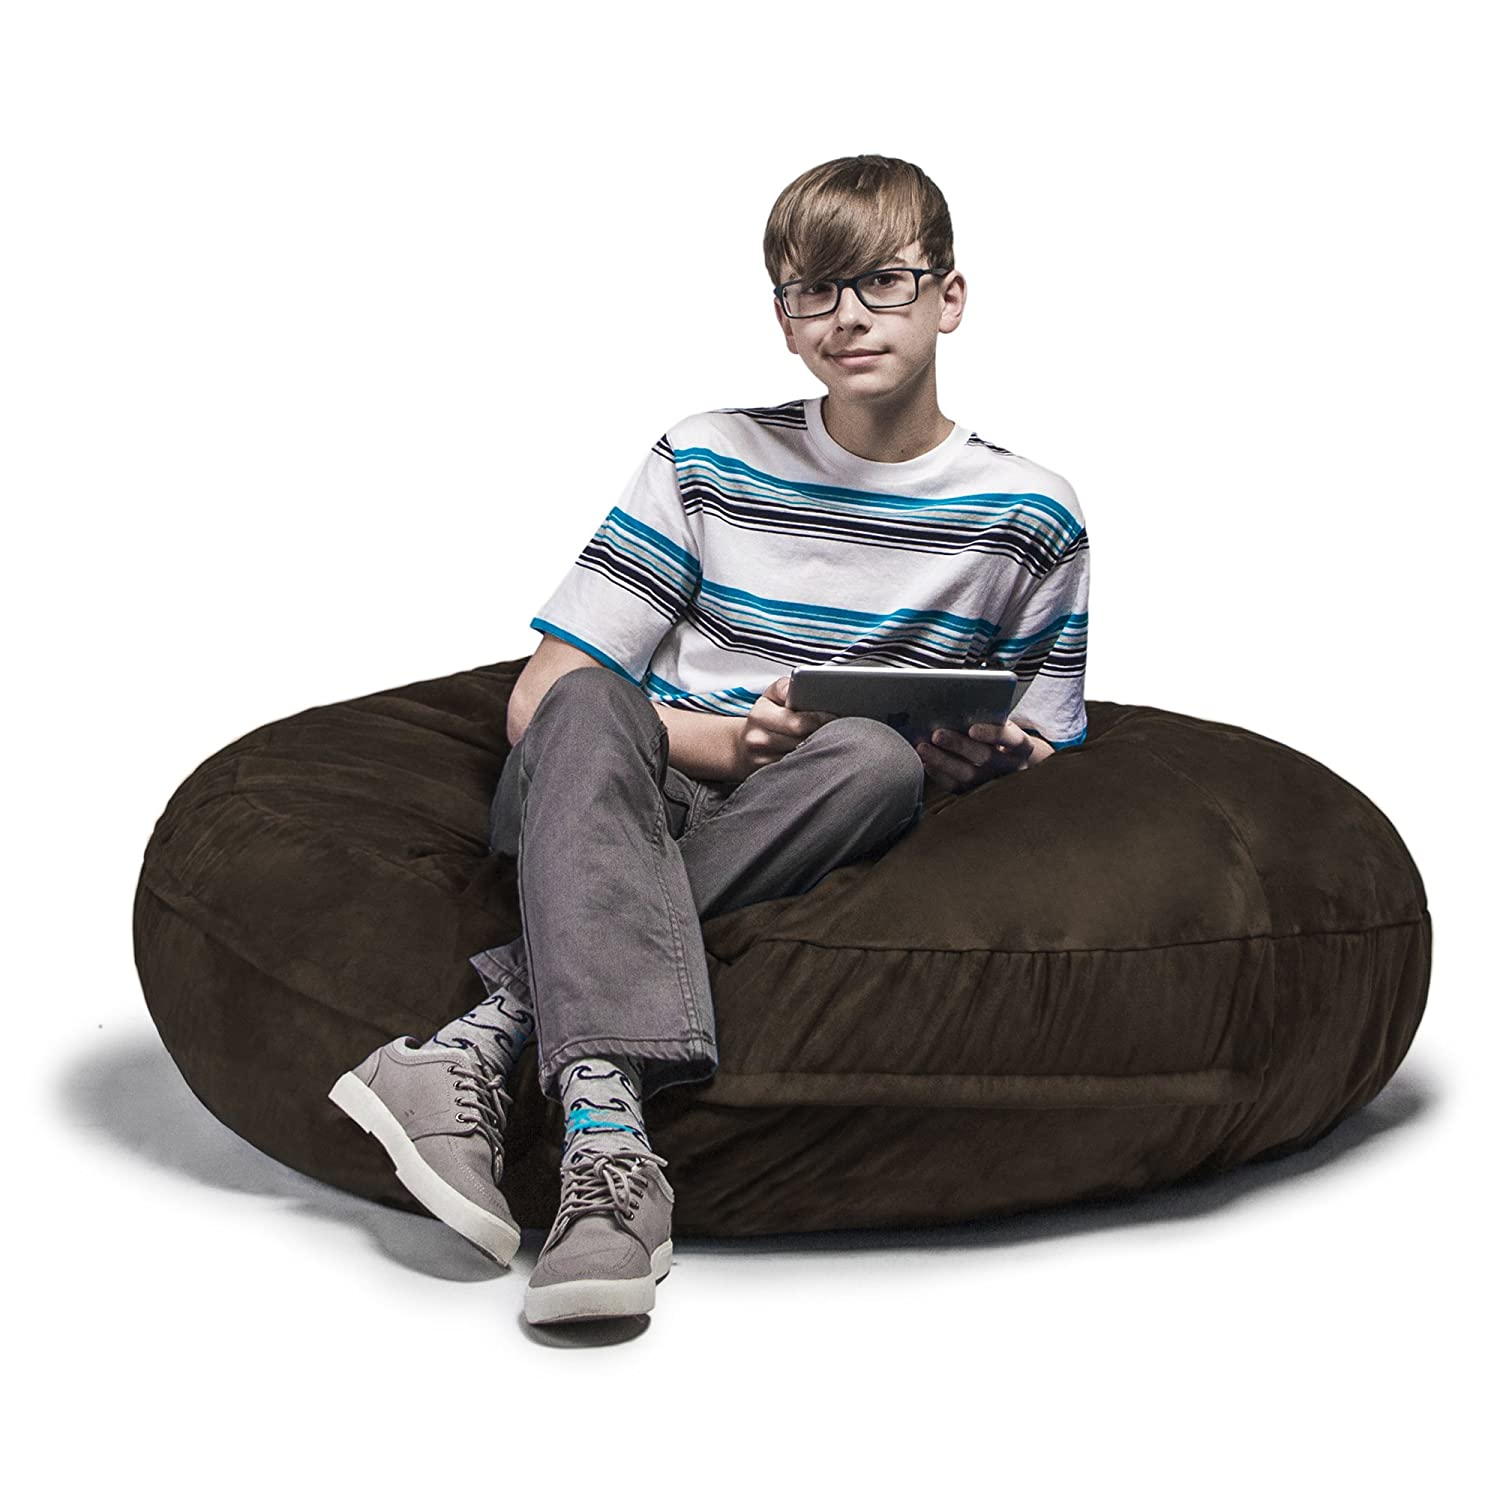 Jaxx 4 ft Cocoon Bean Bag Chair, Chocolate